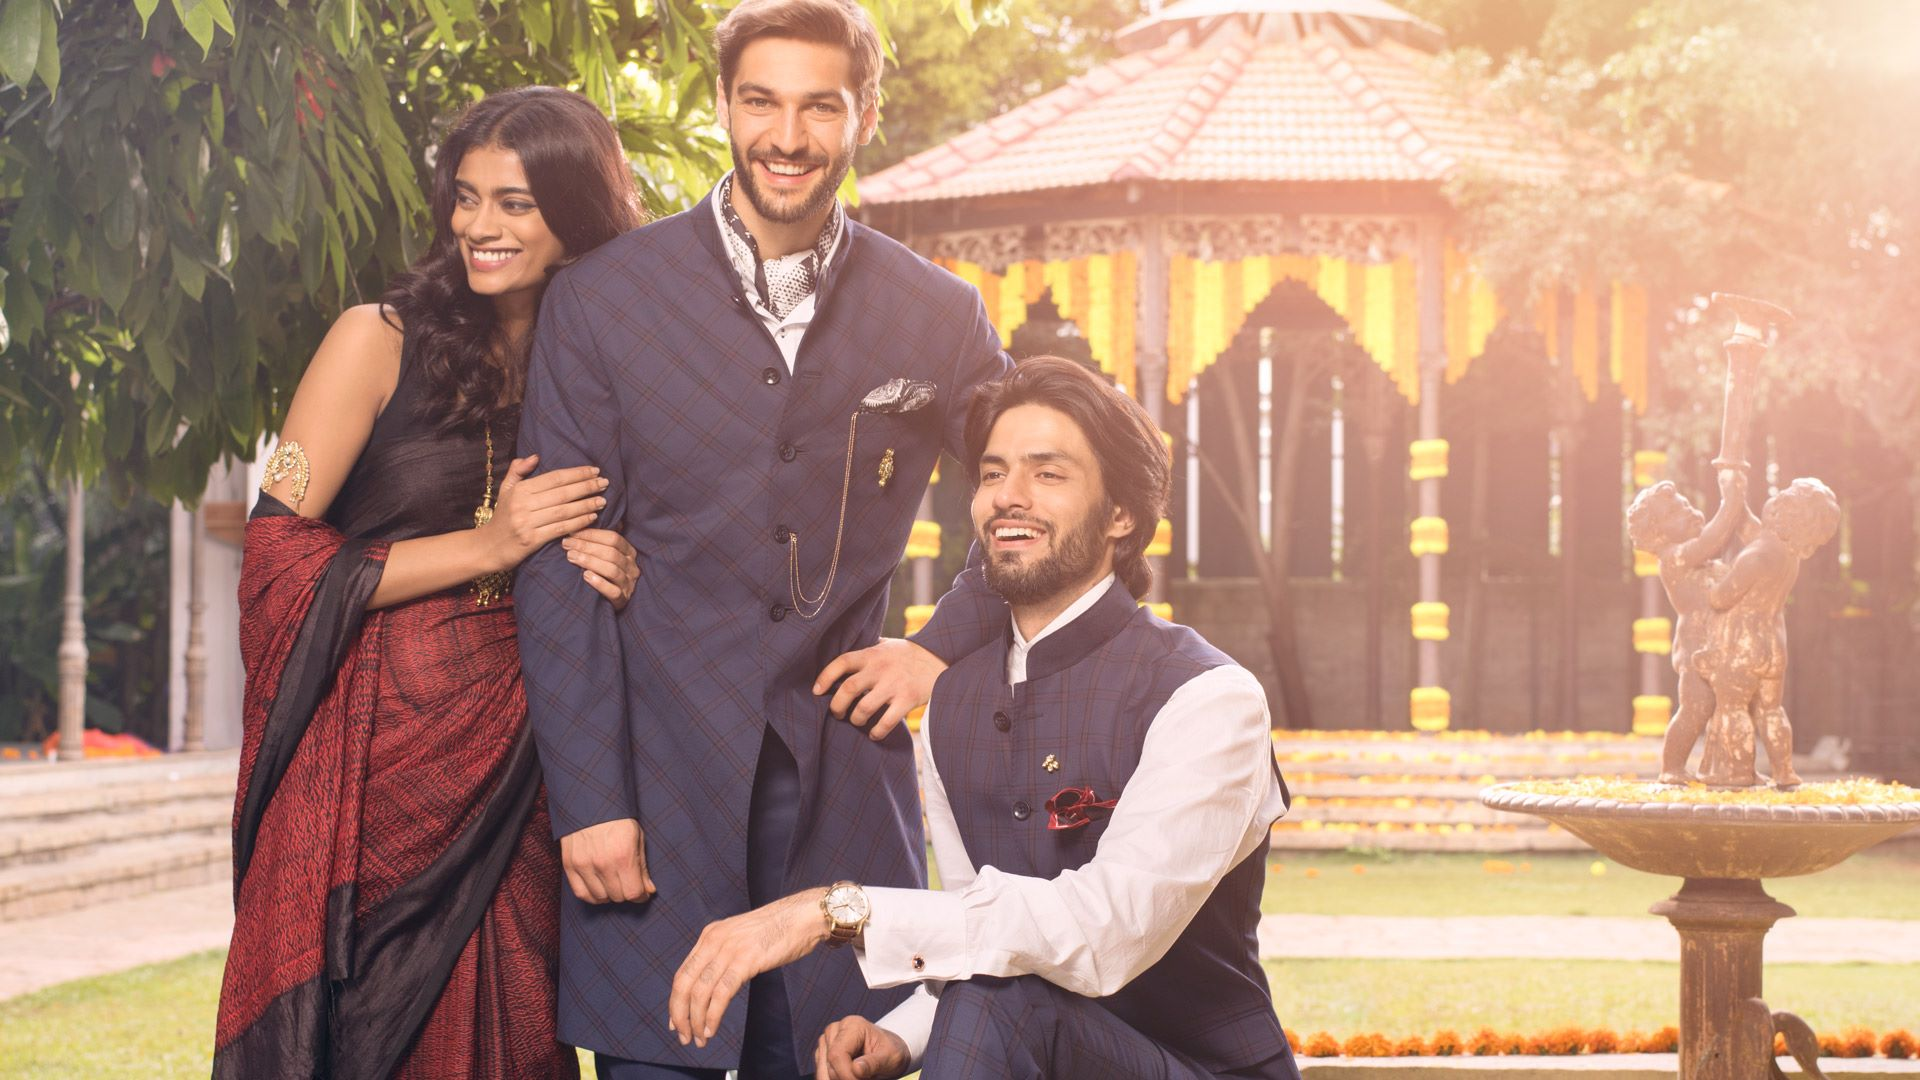 5 new jacket choices to keep your wardrobe mojo intact. #IndianWedding #TheArvindStore #FashionForMen #WeddingSeason #WeddingCollection #DapperIndian #BestMan #Ceremonial GQ India